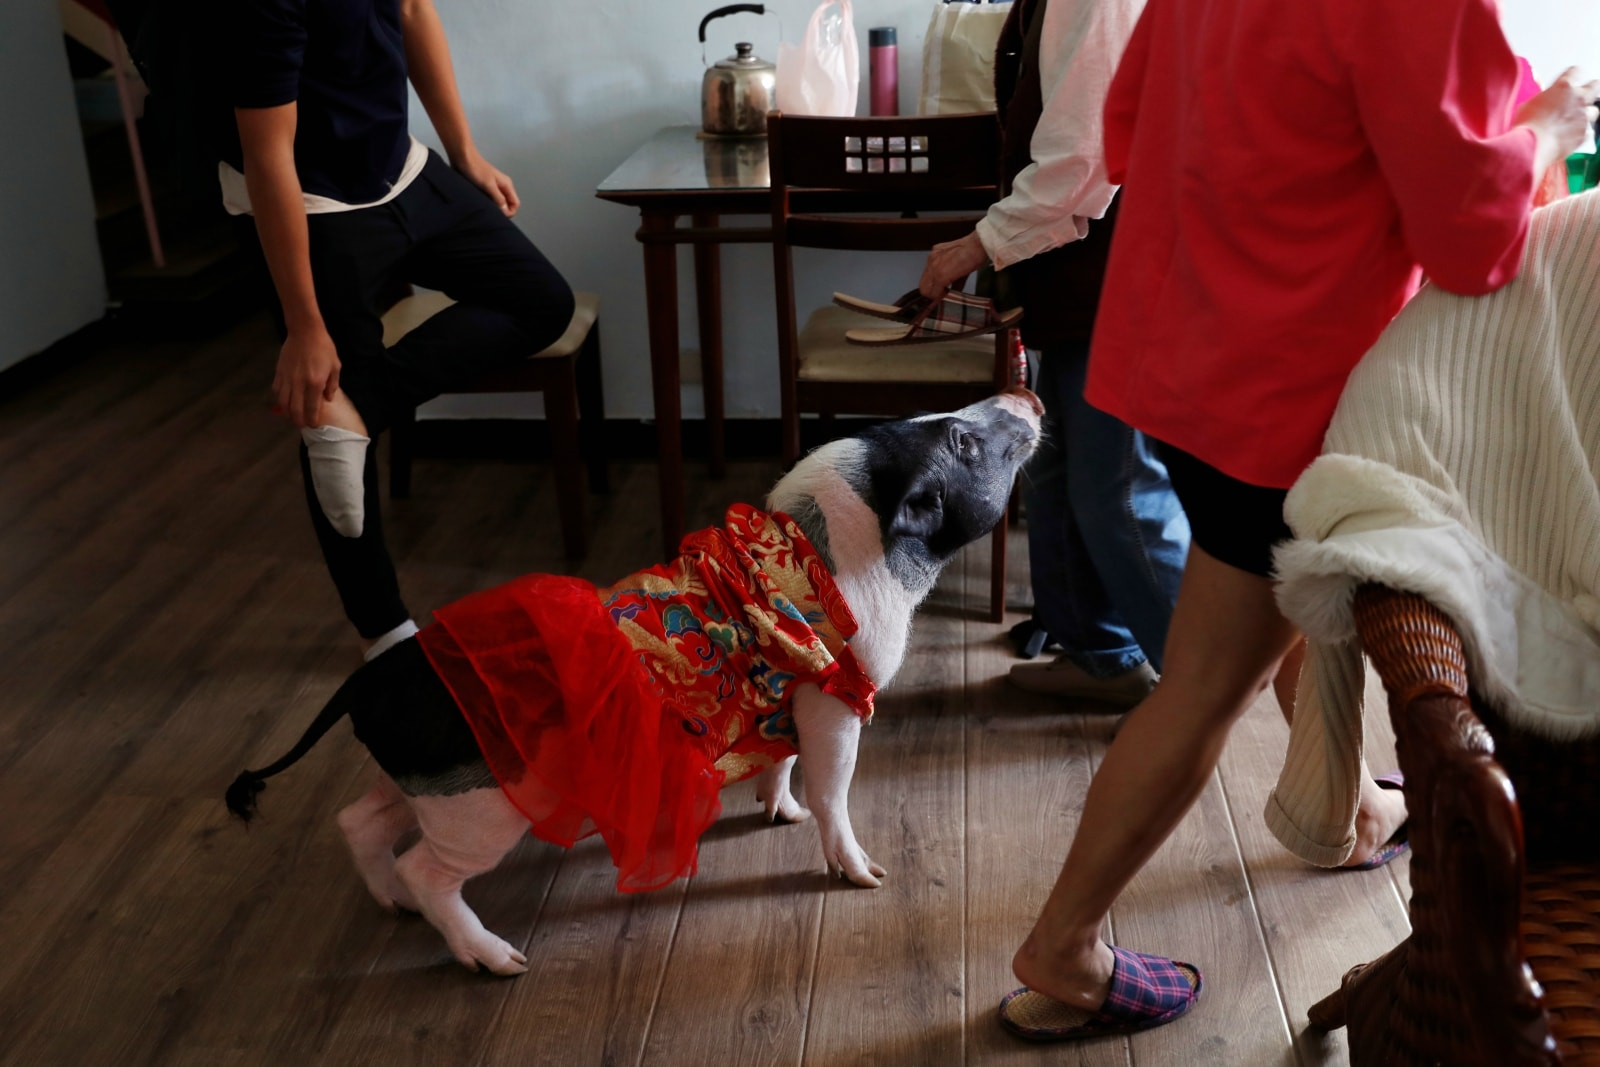 Sin Sin, a 4 years-old pet pig, which has been abandoned before, looks for food at her owner Anita Chen's house, in Taipei, Taiwan January 28, 2019. REUTERS/Tyrone Siu